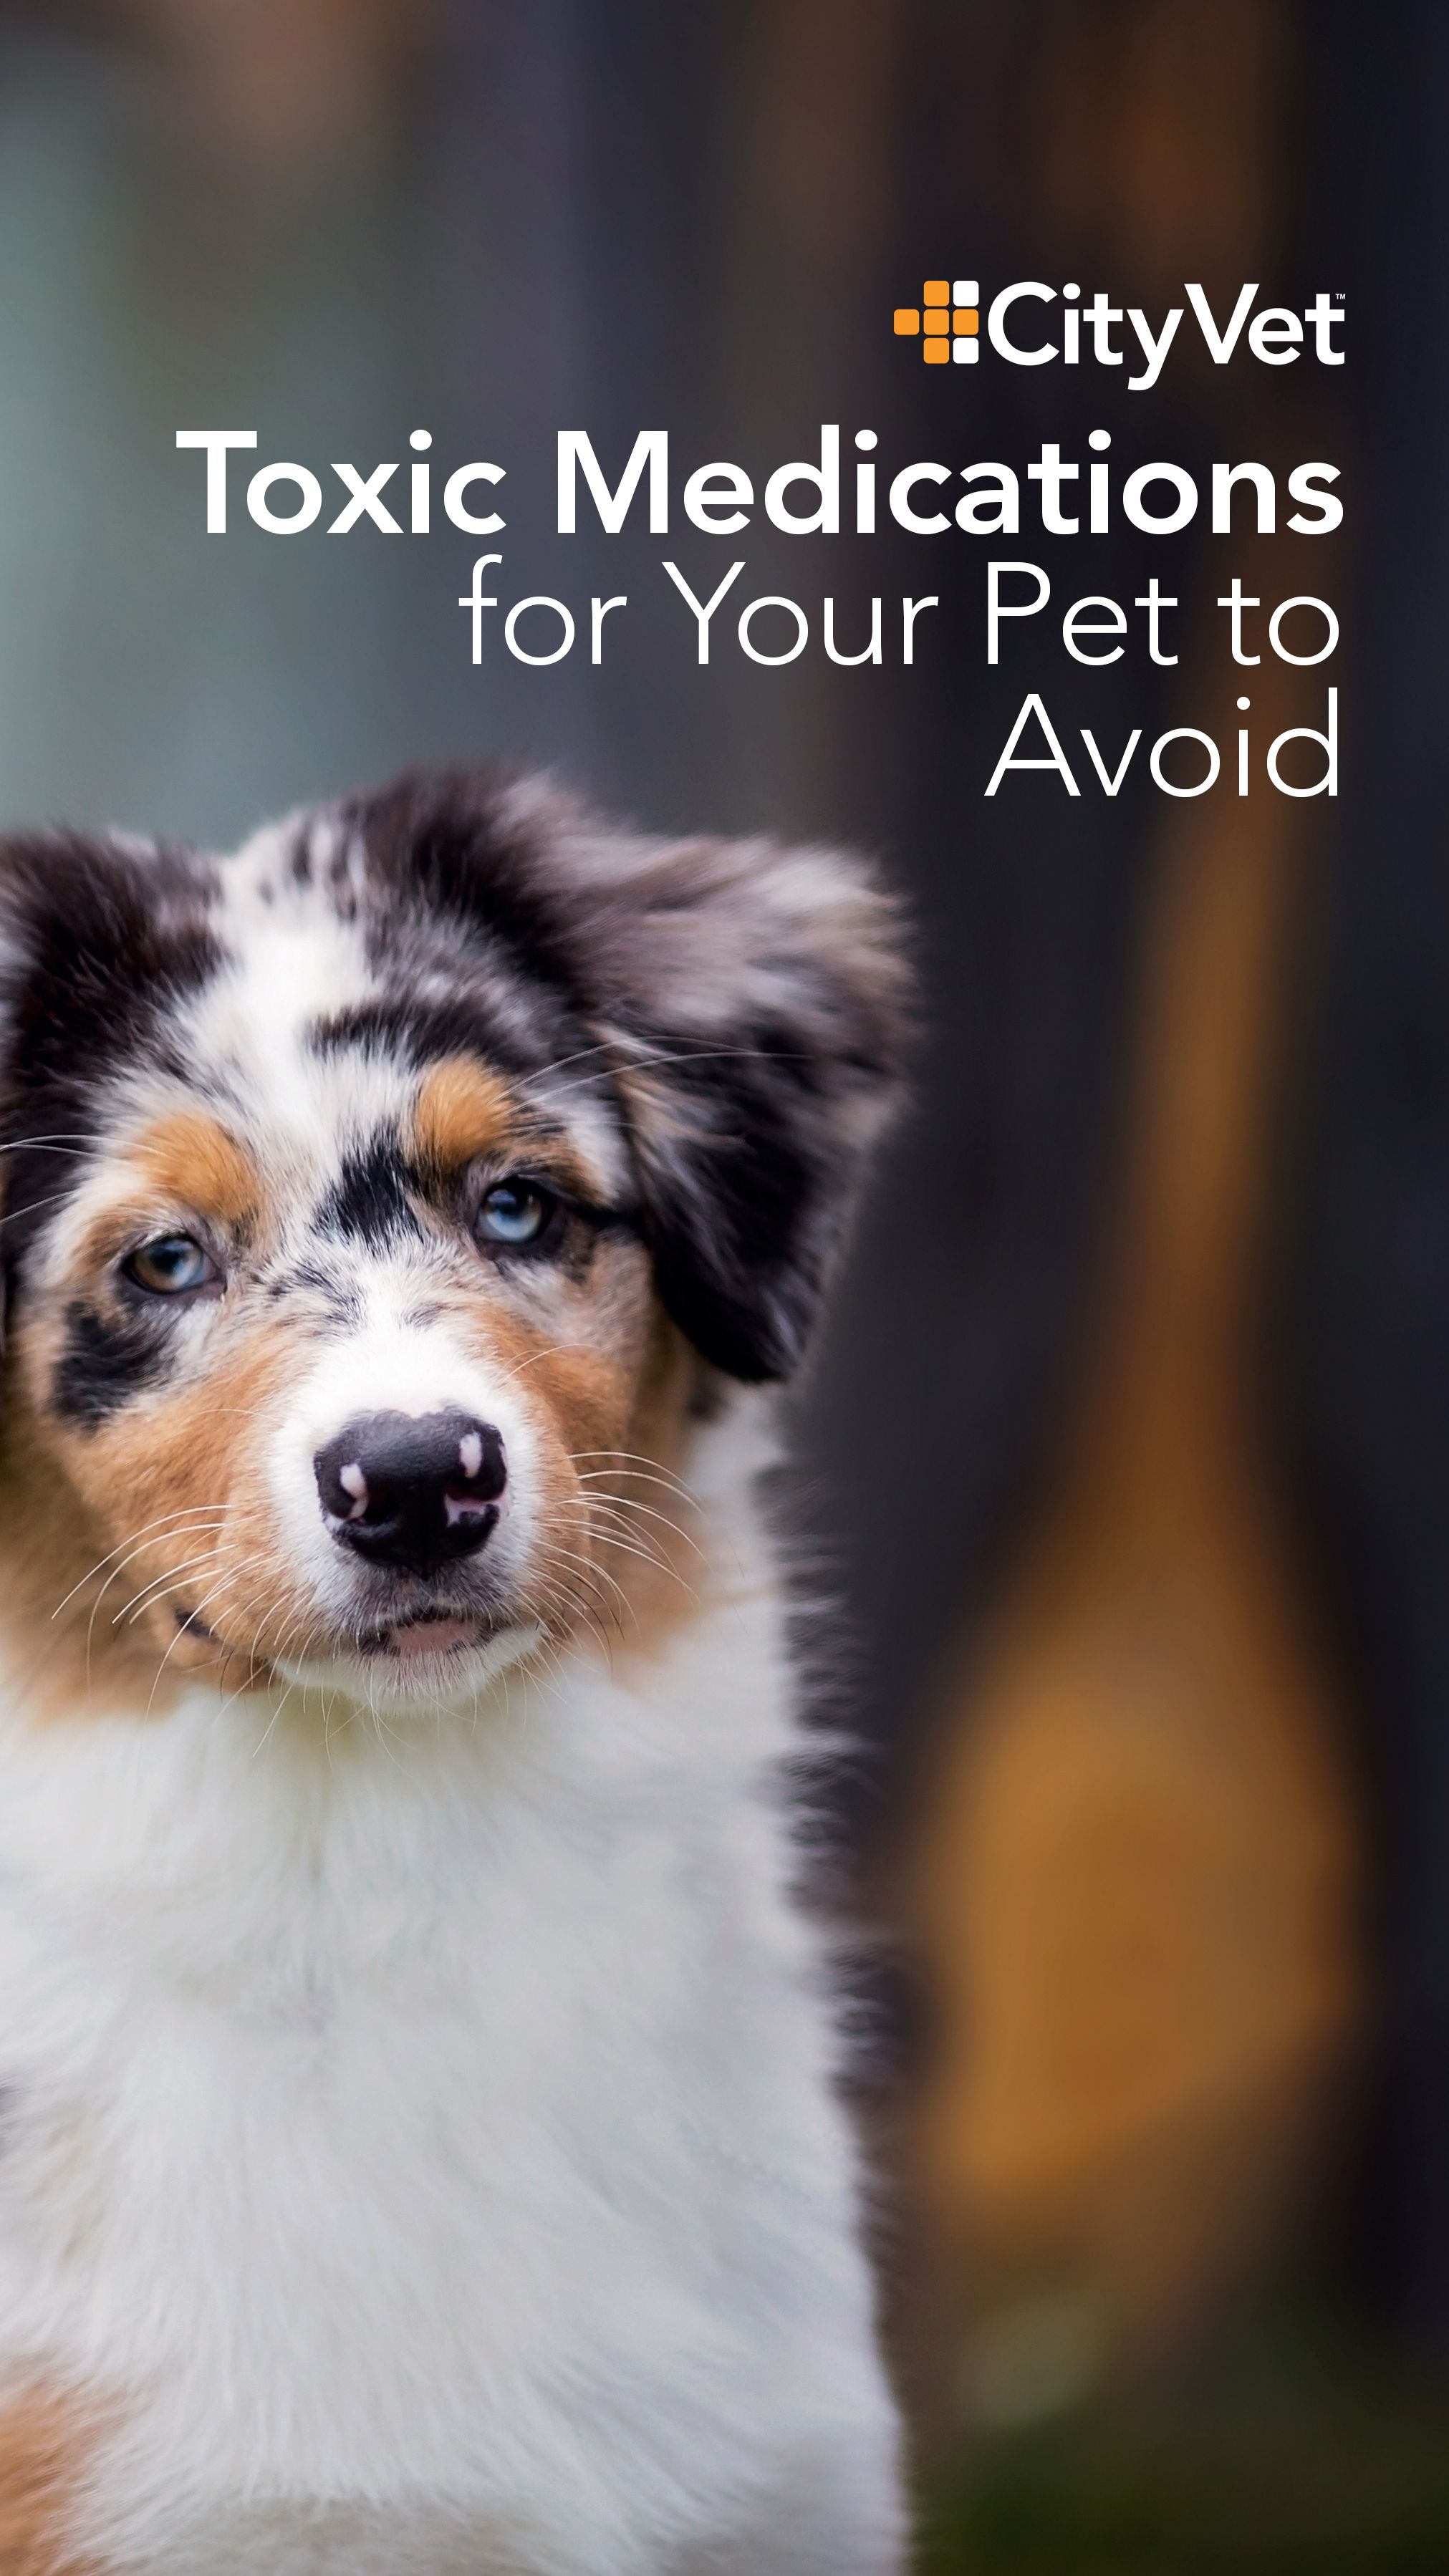 Make Sure To Steer Your Pet Clear Of These Over The Counter Medications Your Pet Medical Pet Health